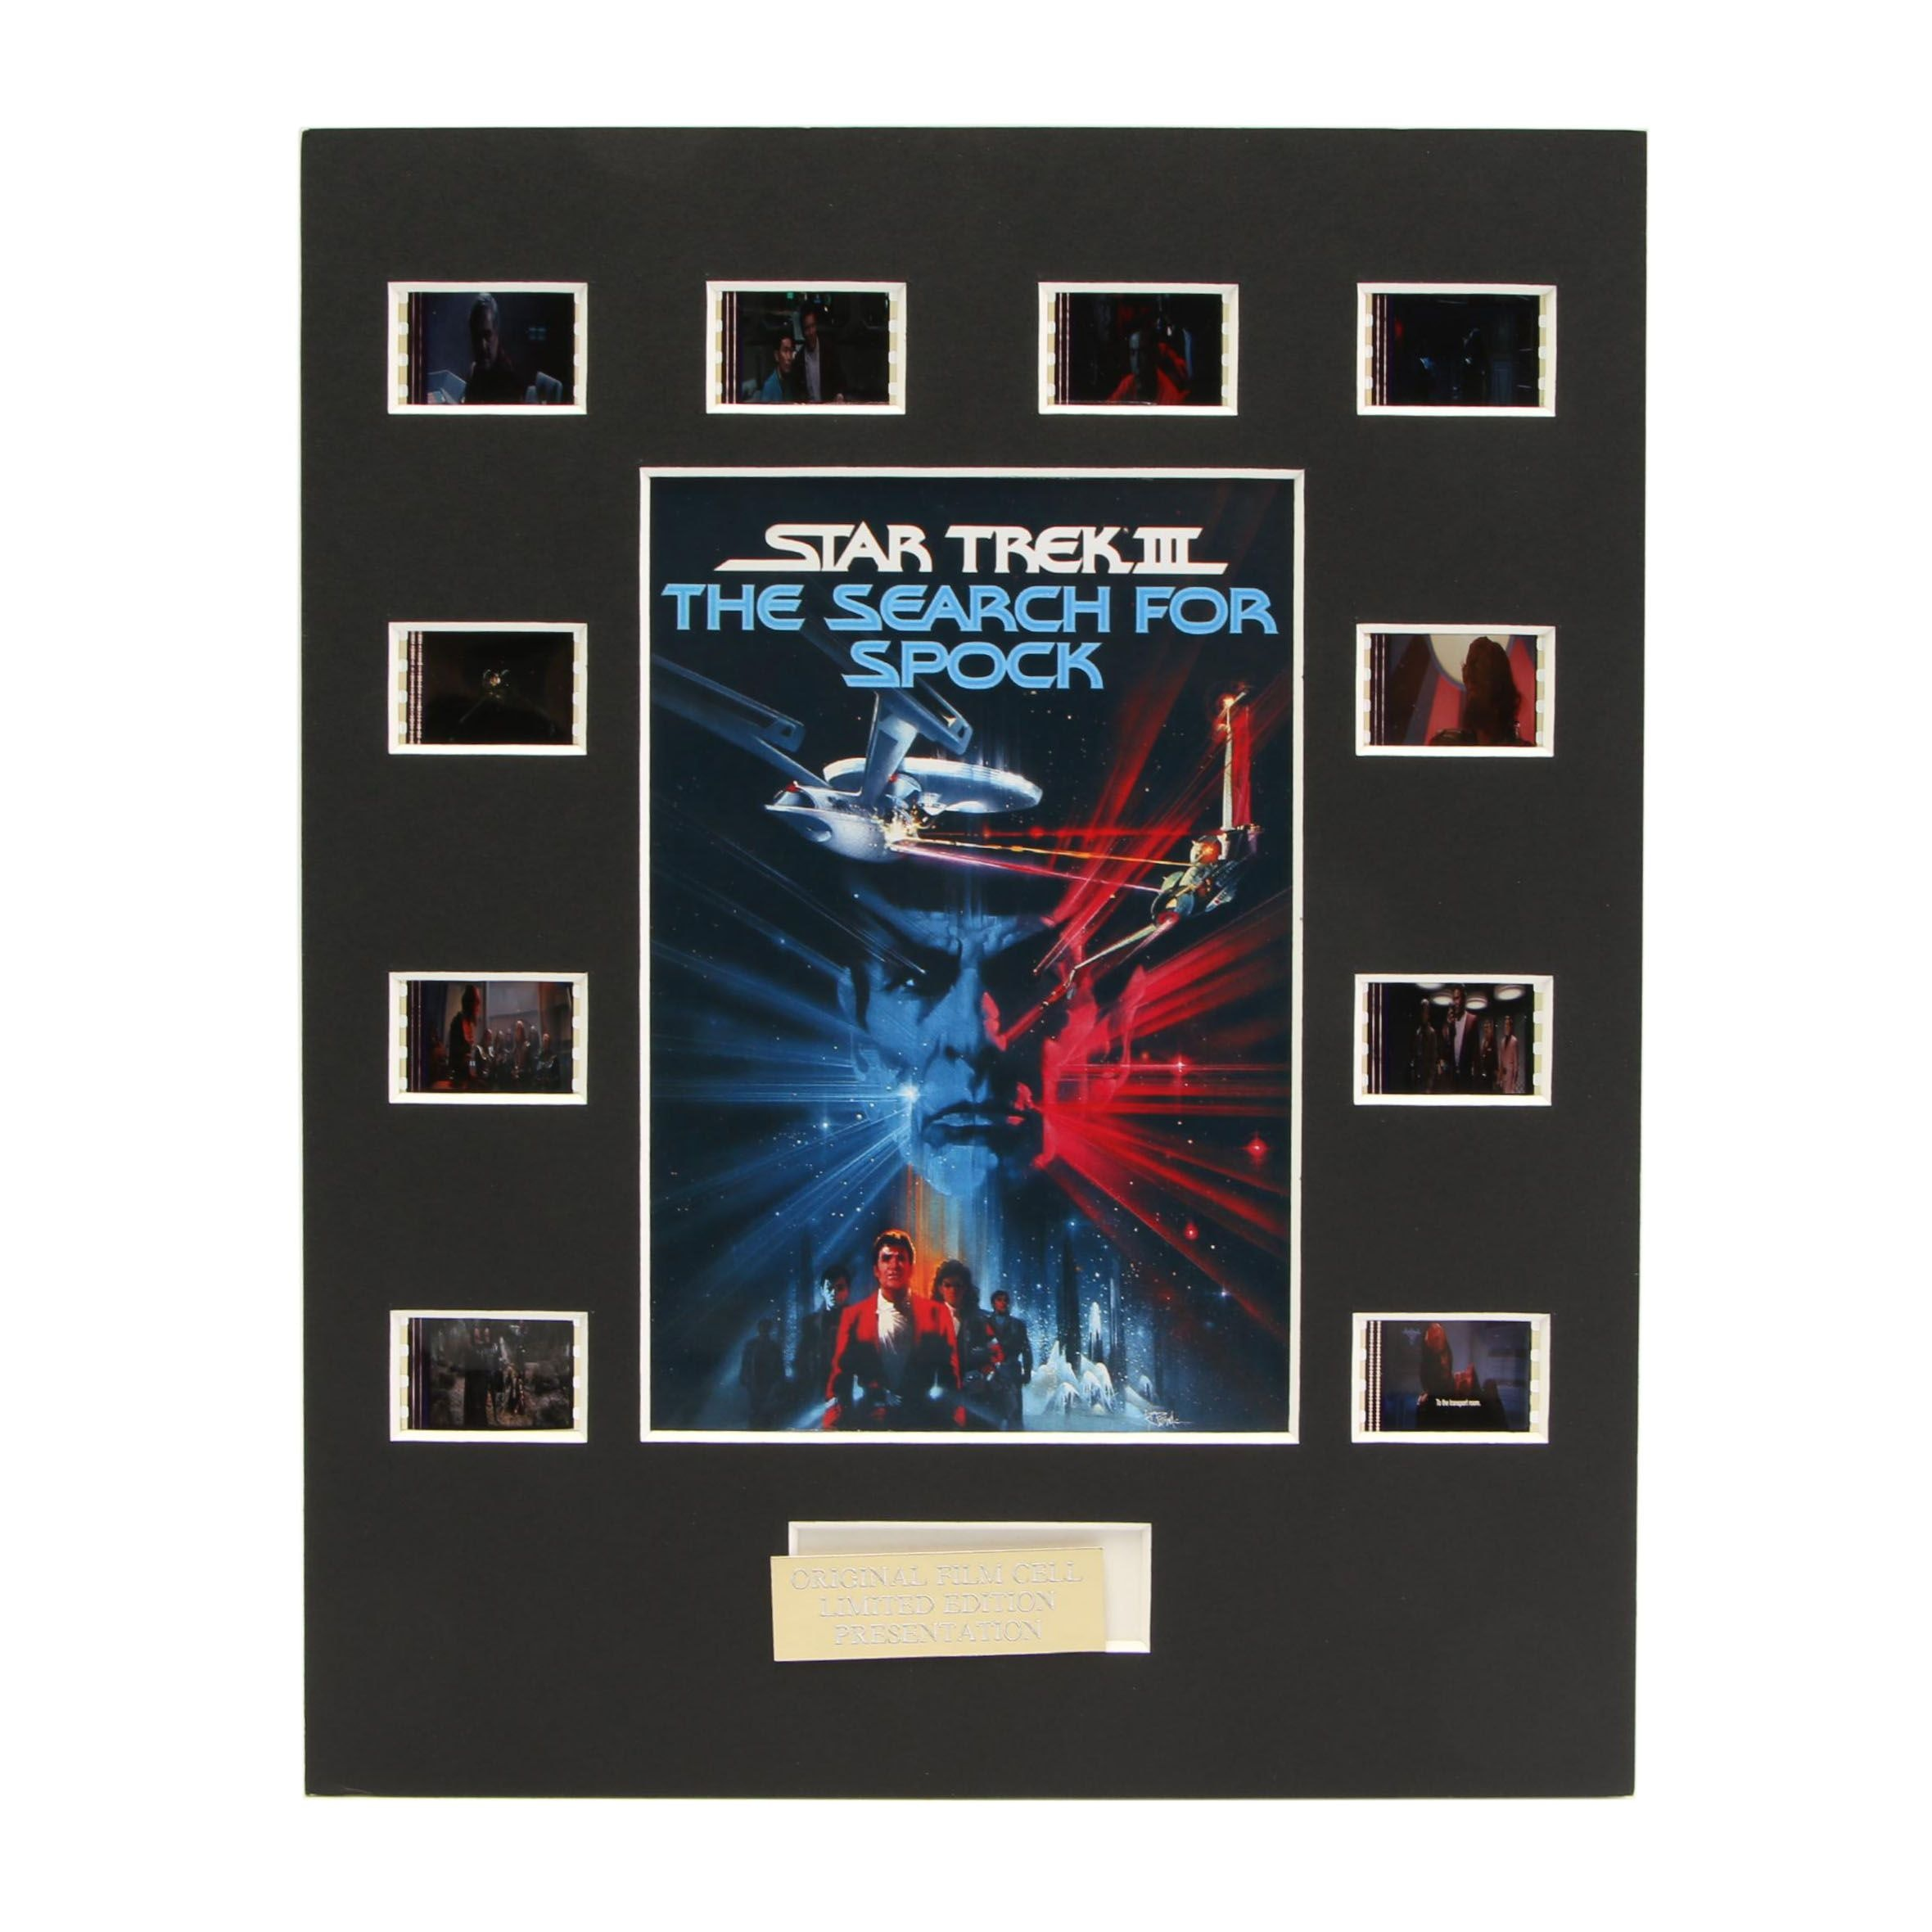 """Star Trek III: The Search for Spock"" Original Film Cell Limited Edition Display"